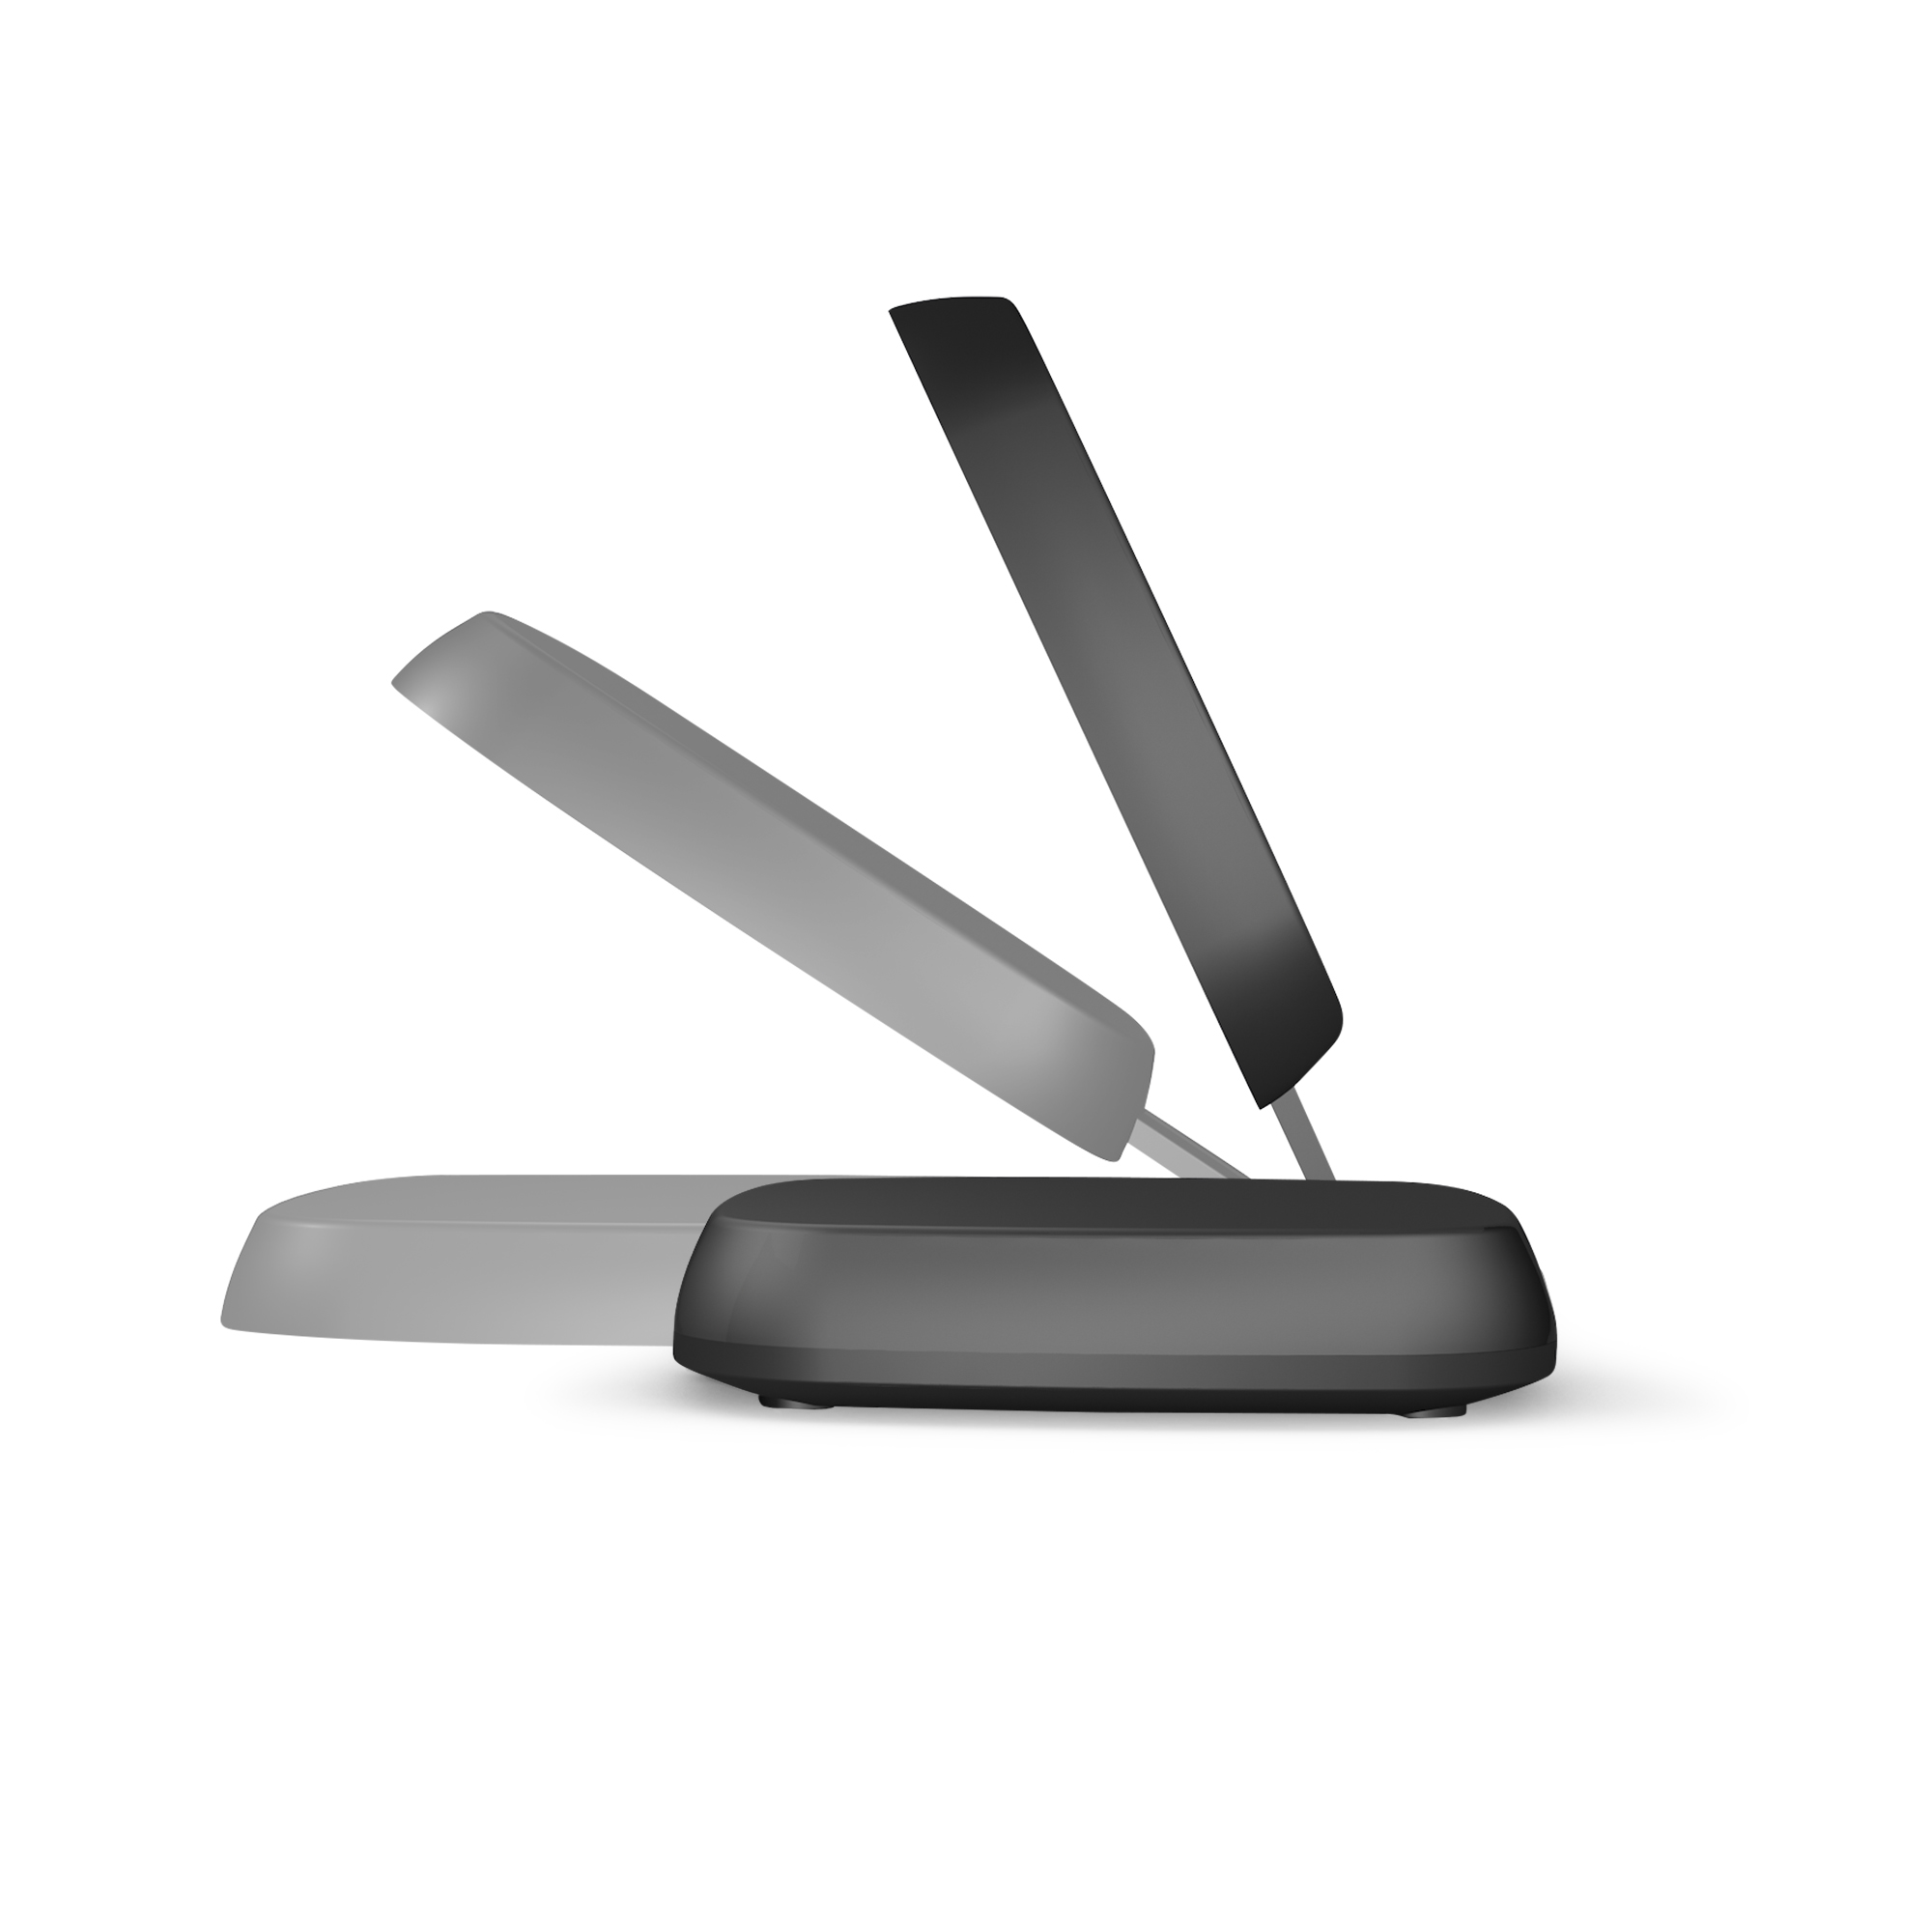 ZESC06B - Zens Fast Wireless Charger Stand Black Side View